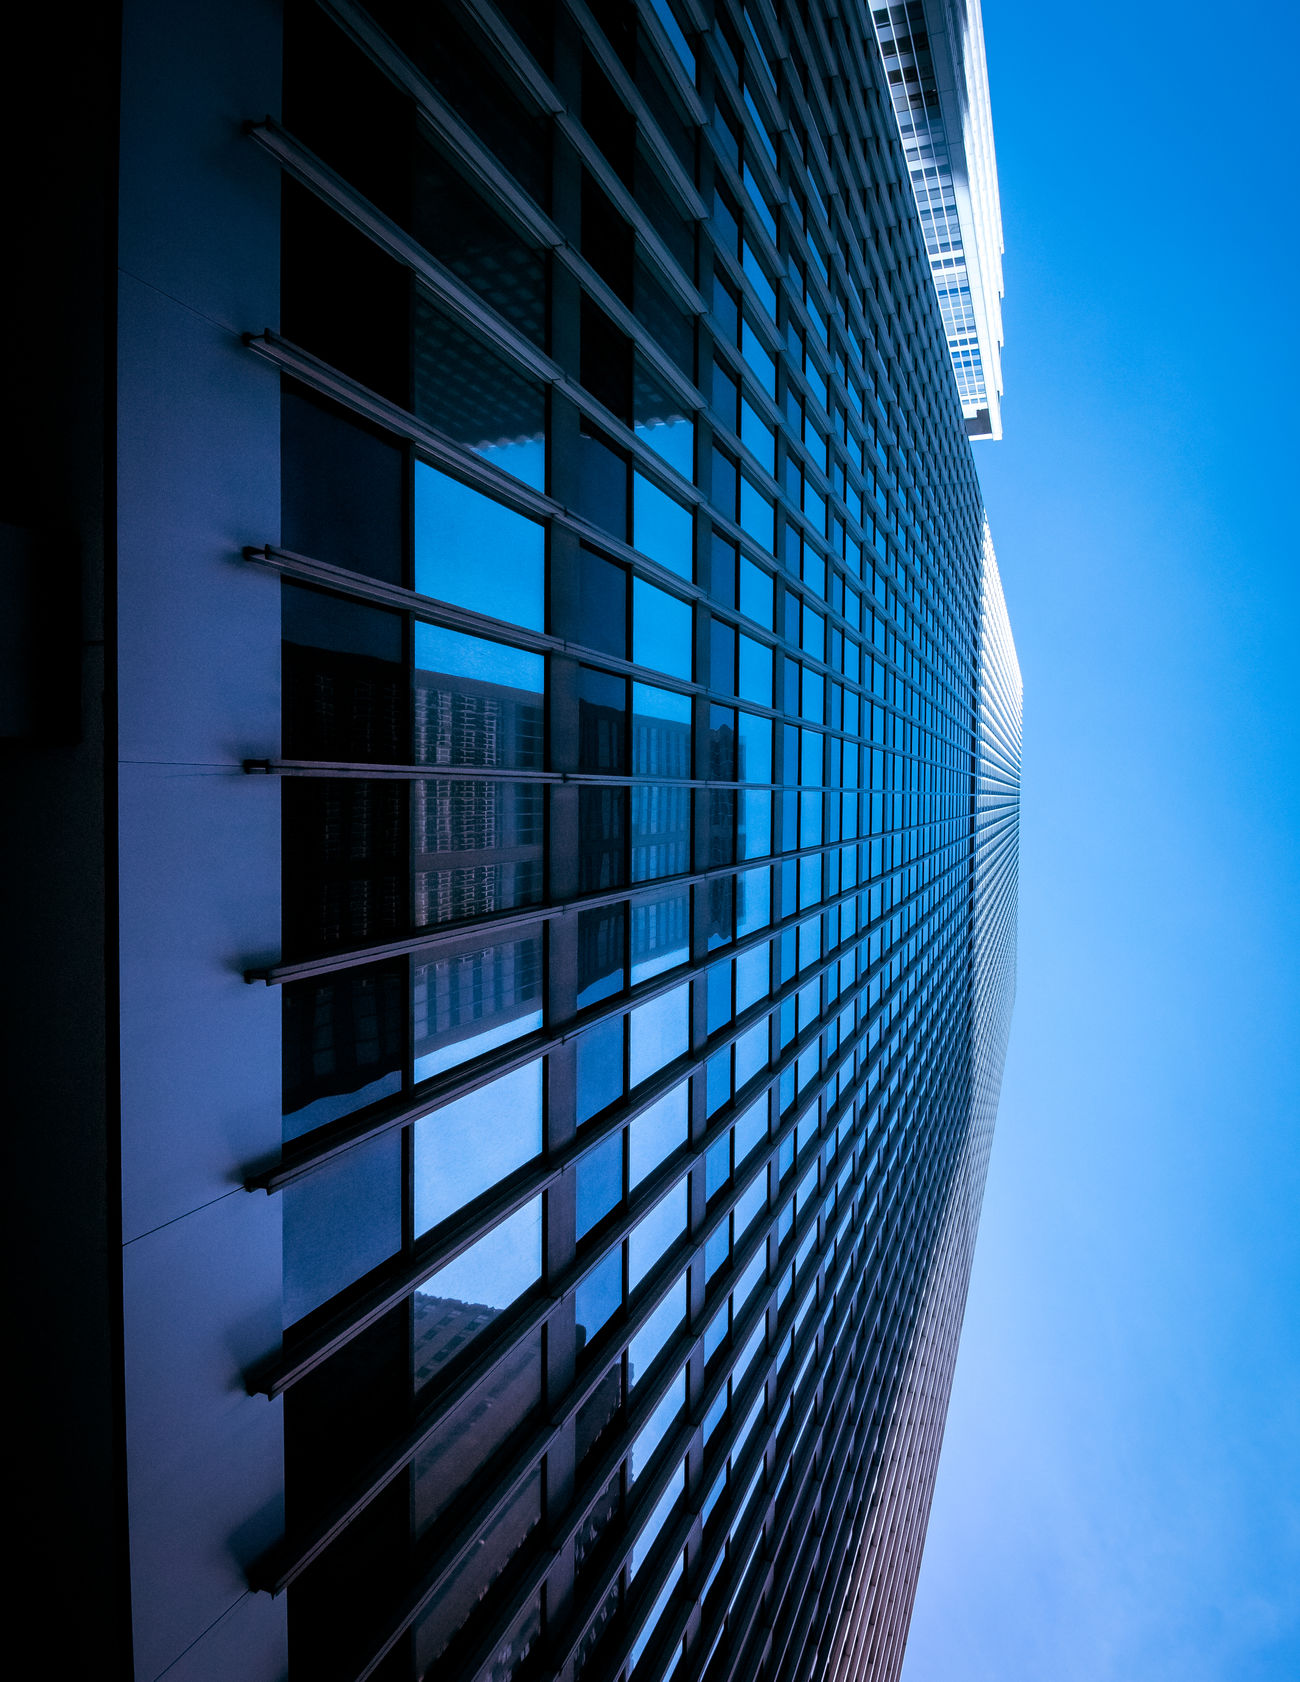 Blue Architecture Blue Building Exterior Built Structure Business City Corporate Business Day Façade Futuristic Glass - Material Low Angle View Modern No People Office Office Building Exterior Office Park Outdoors Place Of Work Reflection Sky Skyscraper Steel The Architect - 2017 EyeEm Awards Window